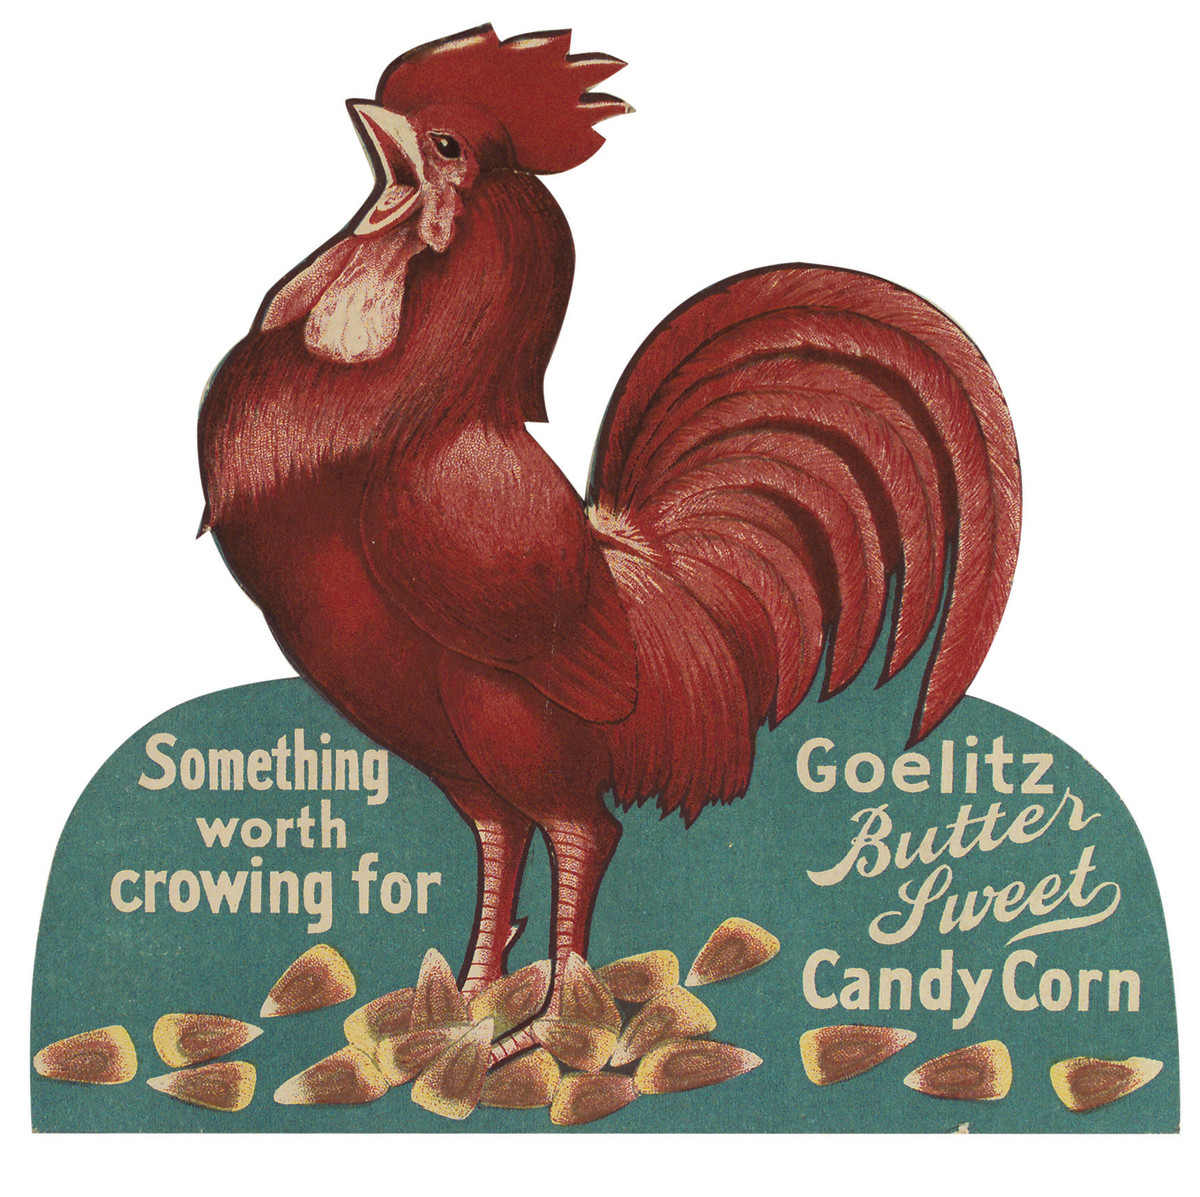 The 1898 packaging design for Goelitz Candy Corn.